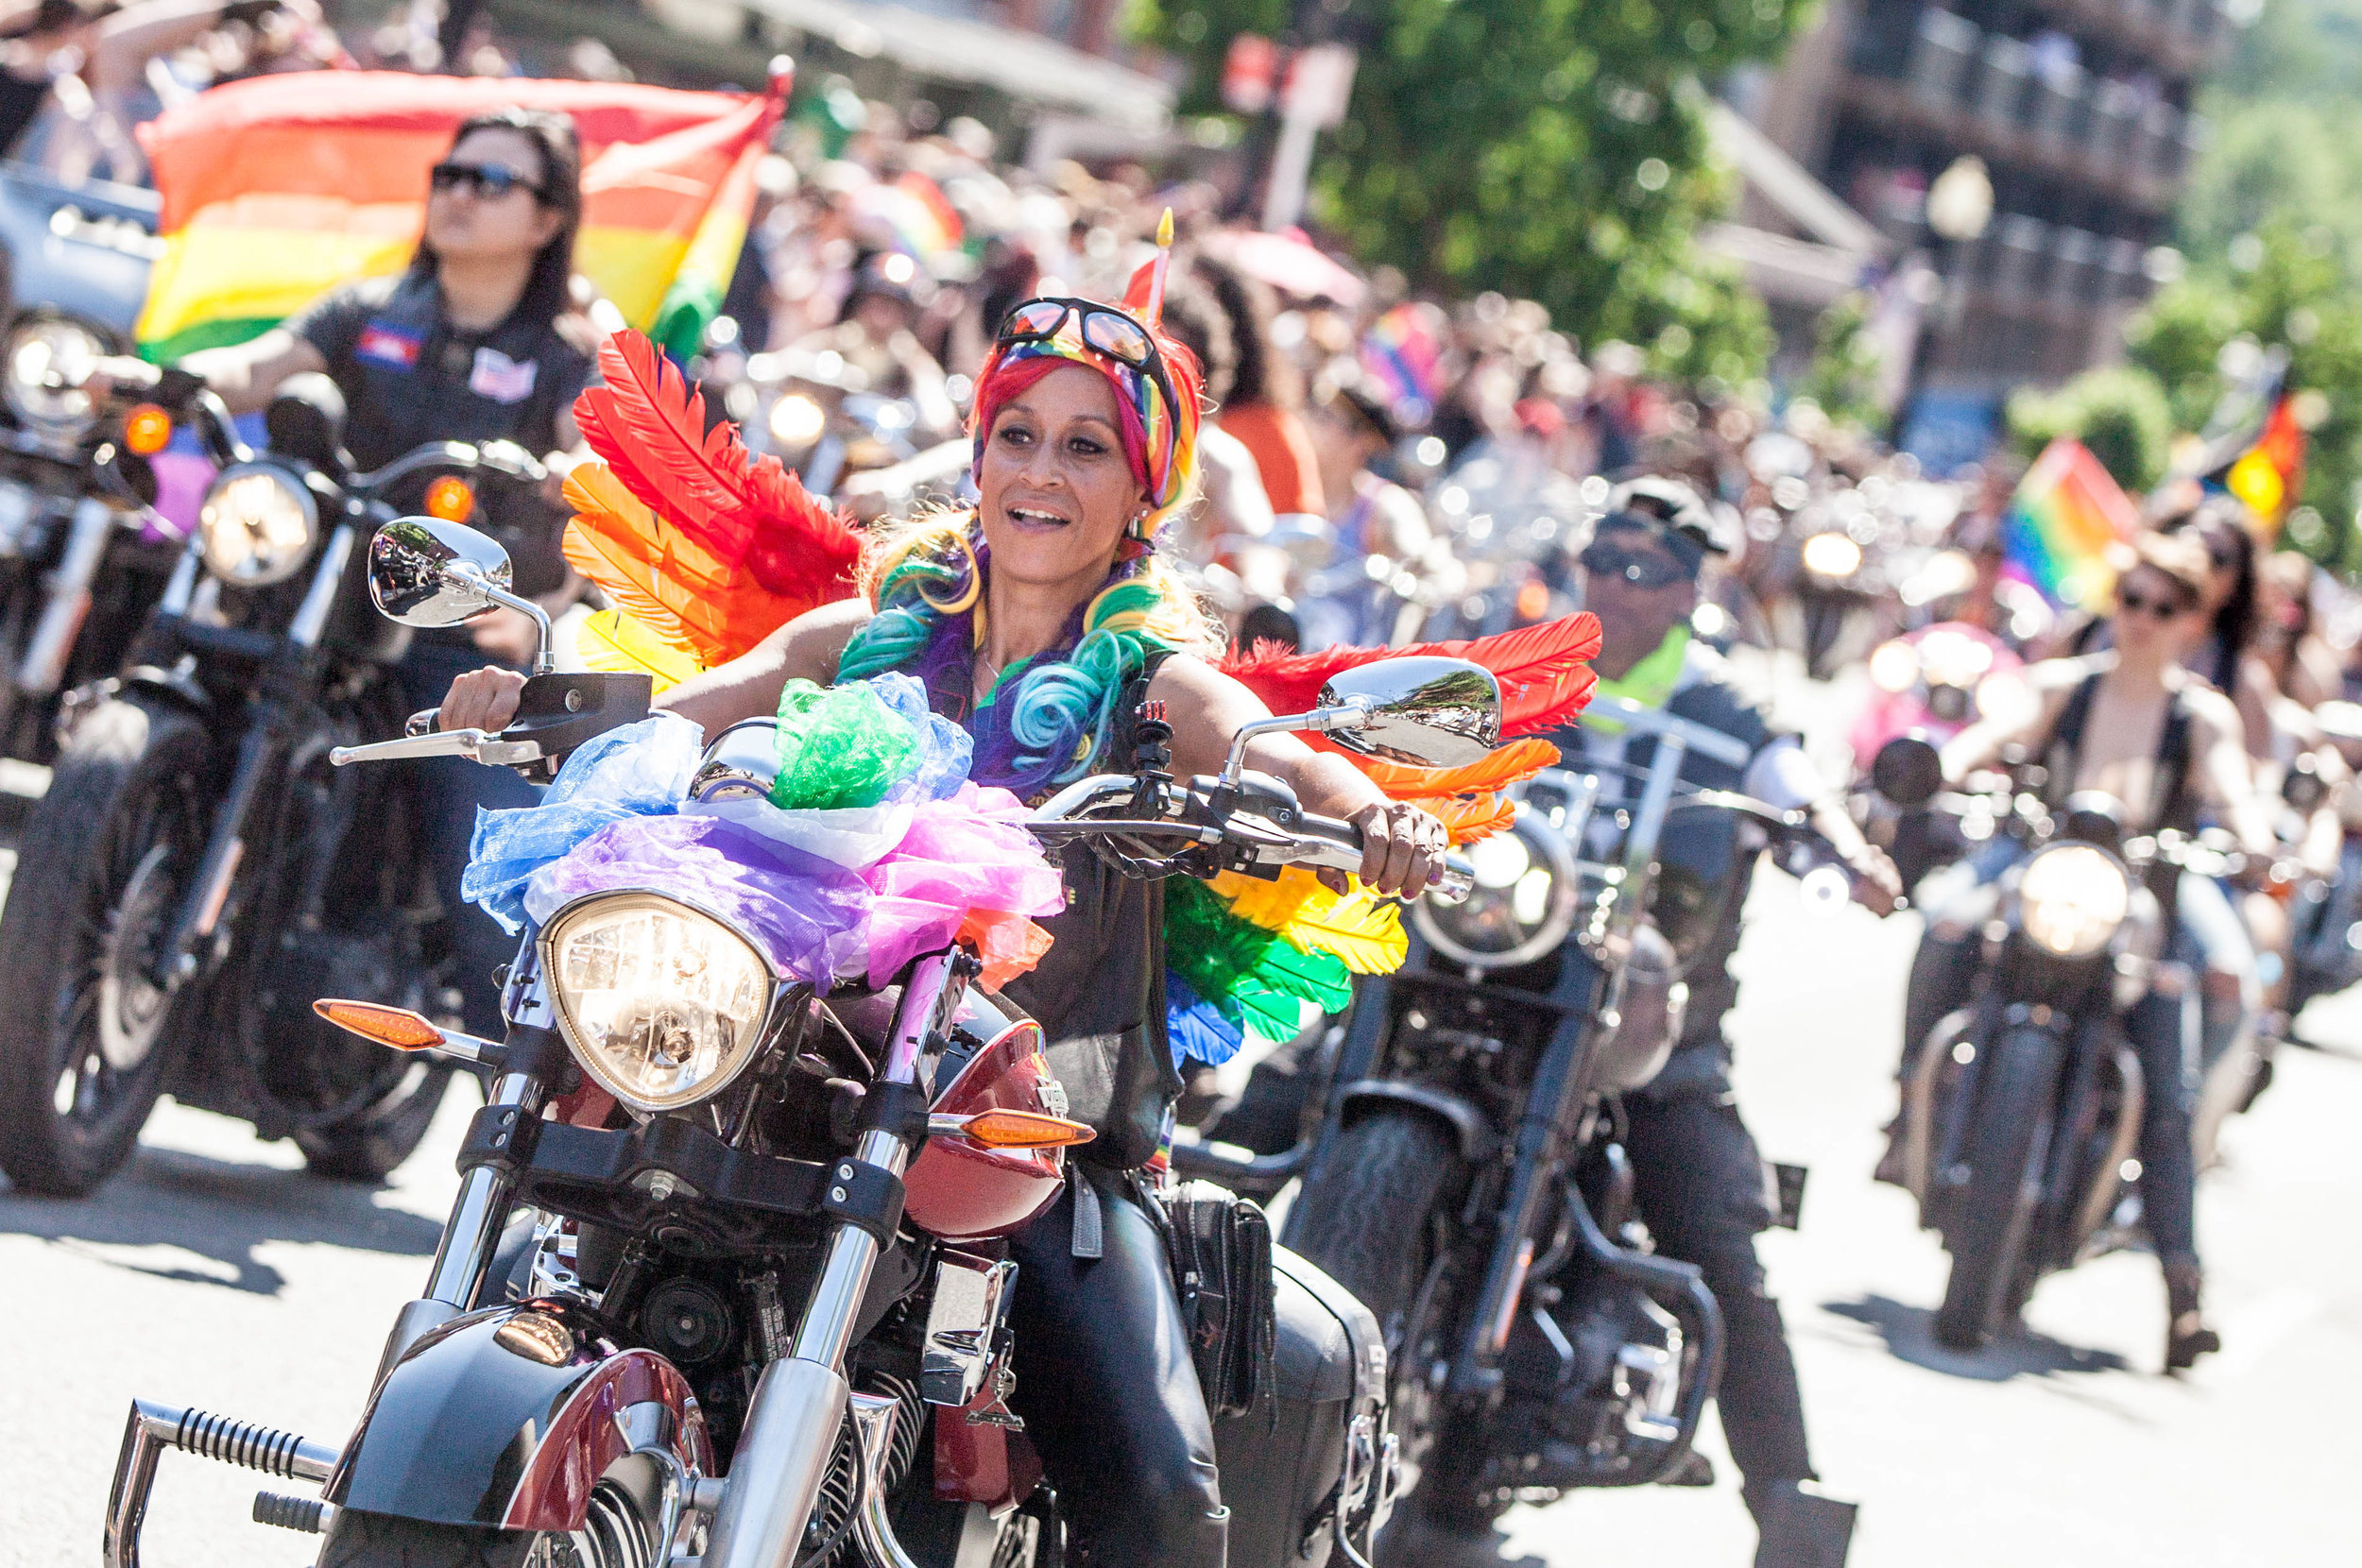 Click on the image to see the gallery of images from the 2017 DC Pride Parade